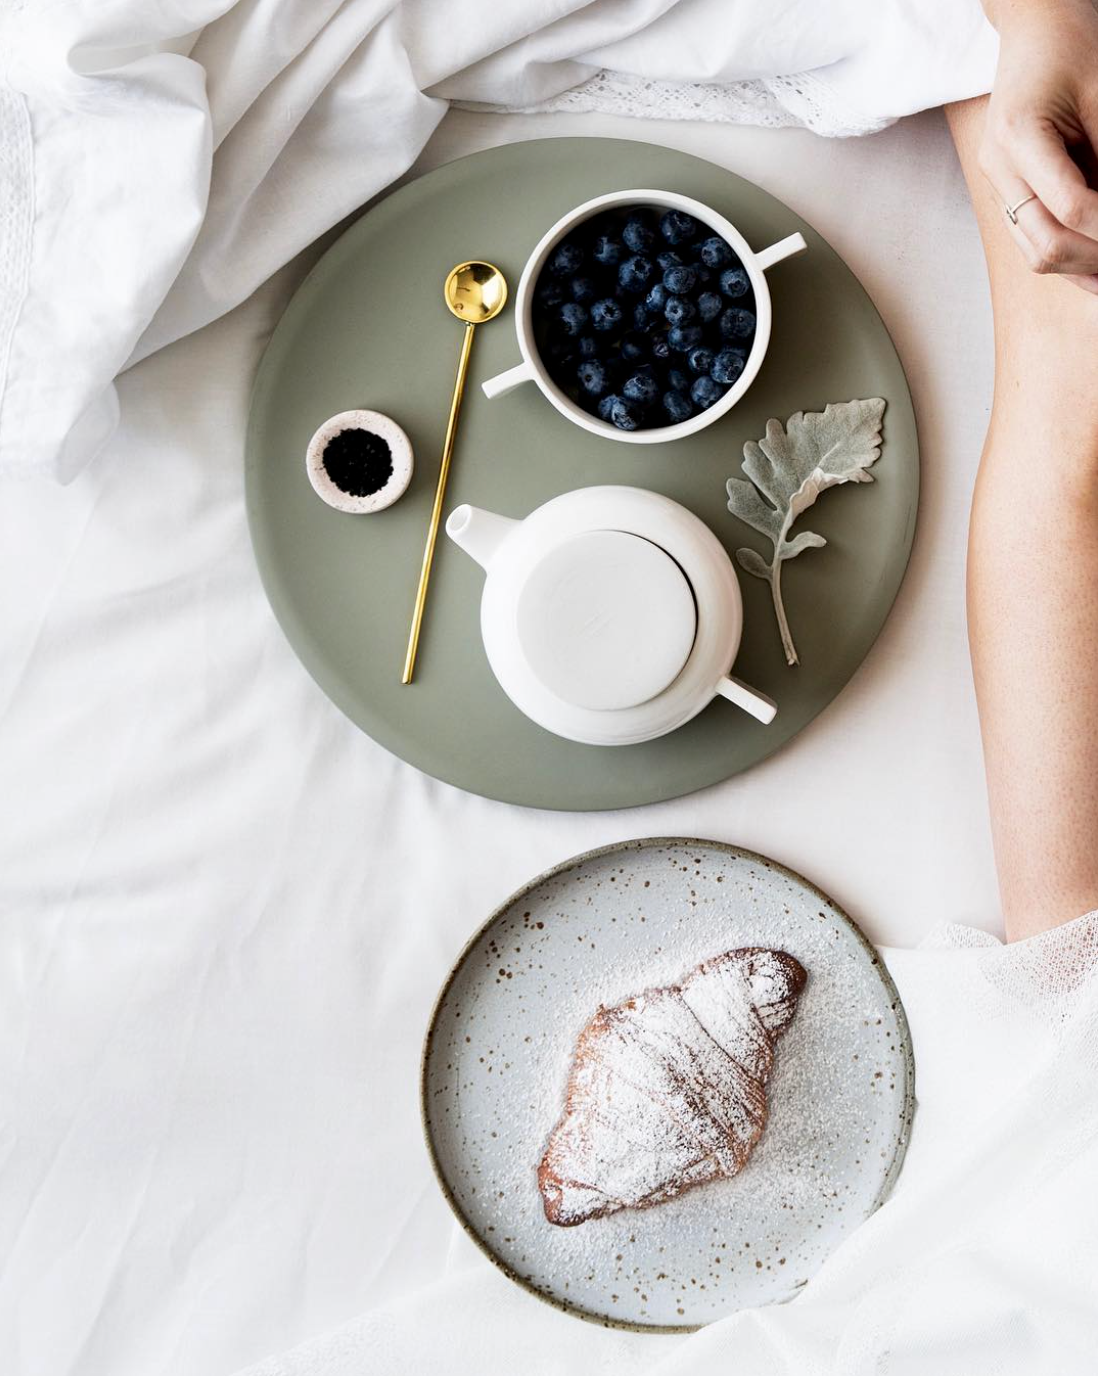 Breakfast in bed. Only topped off by landing your feet